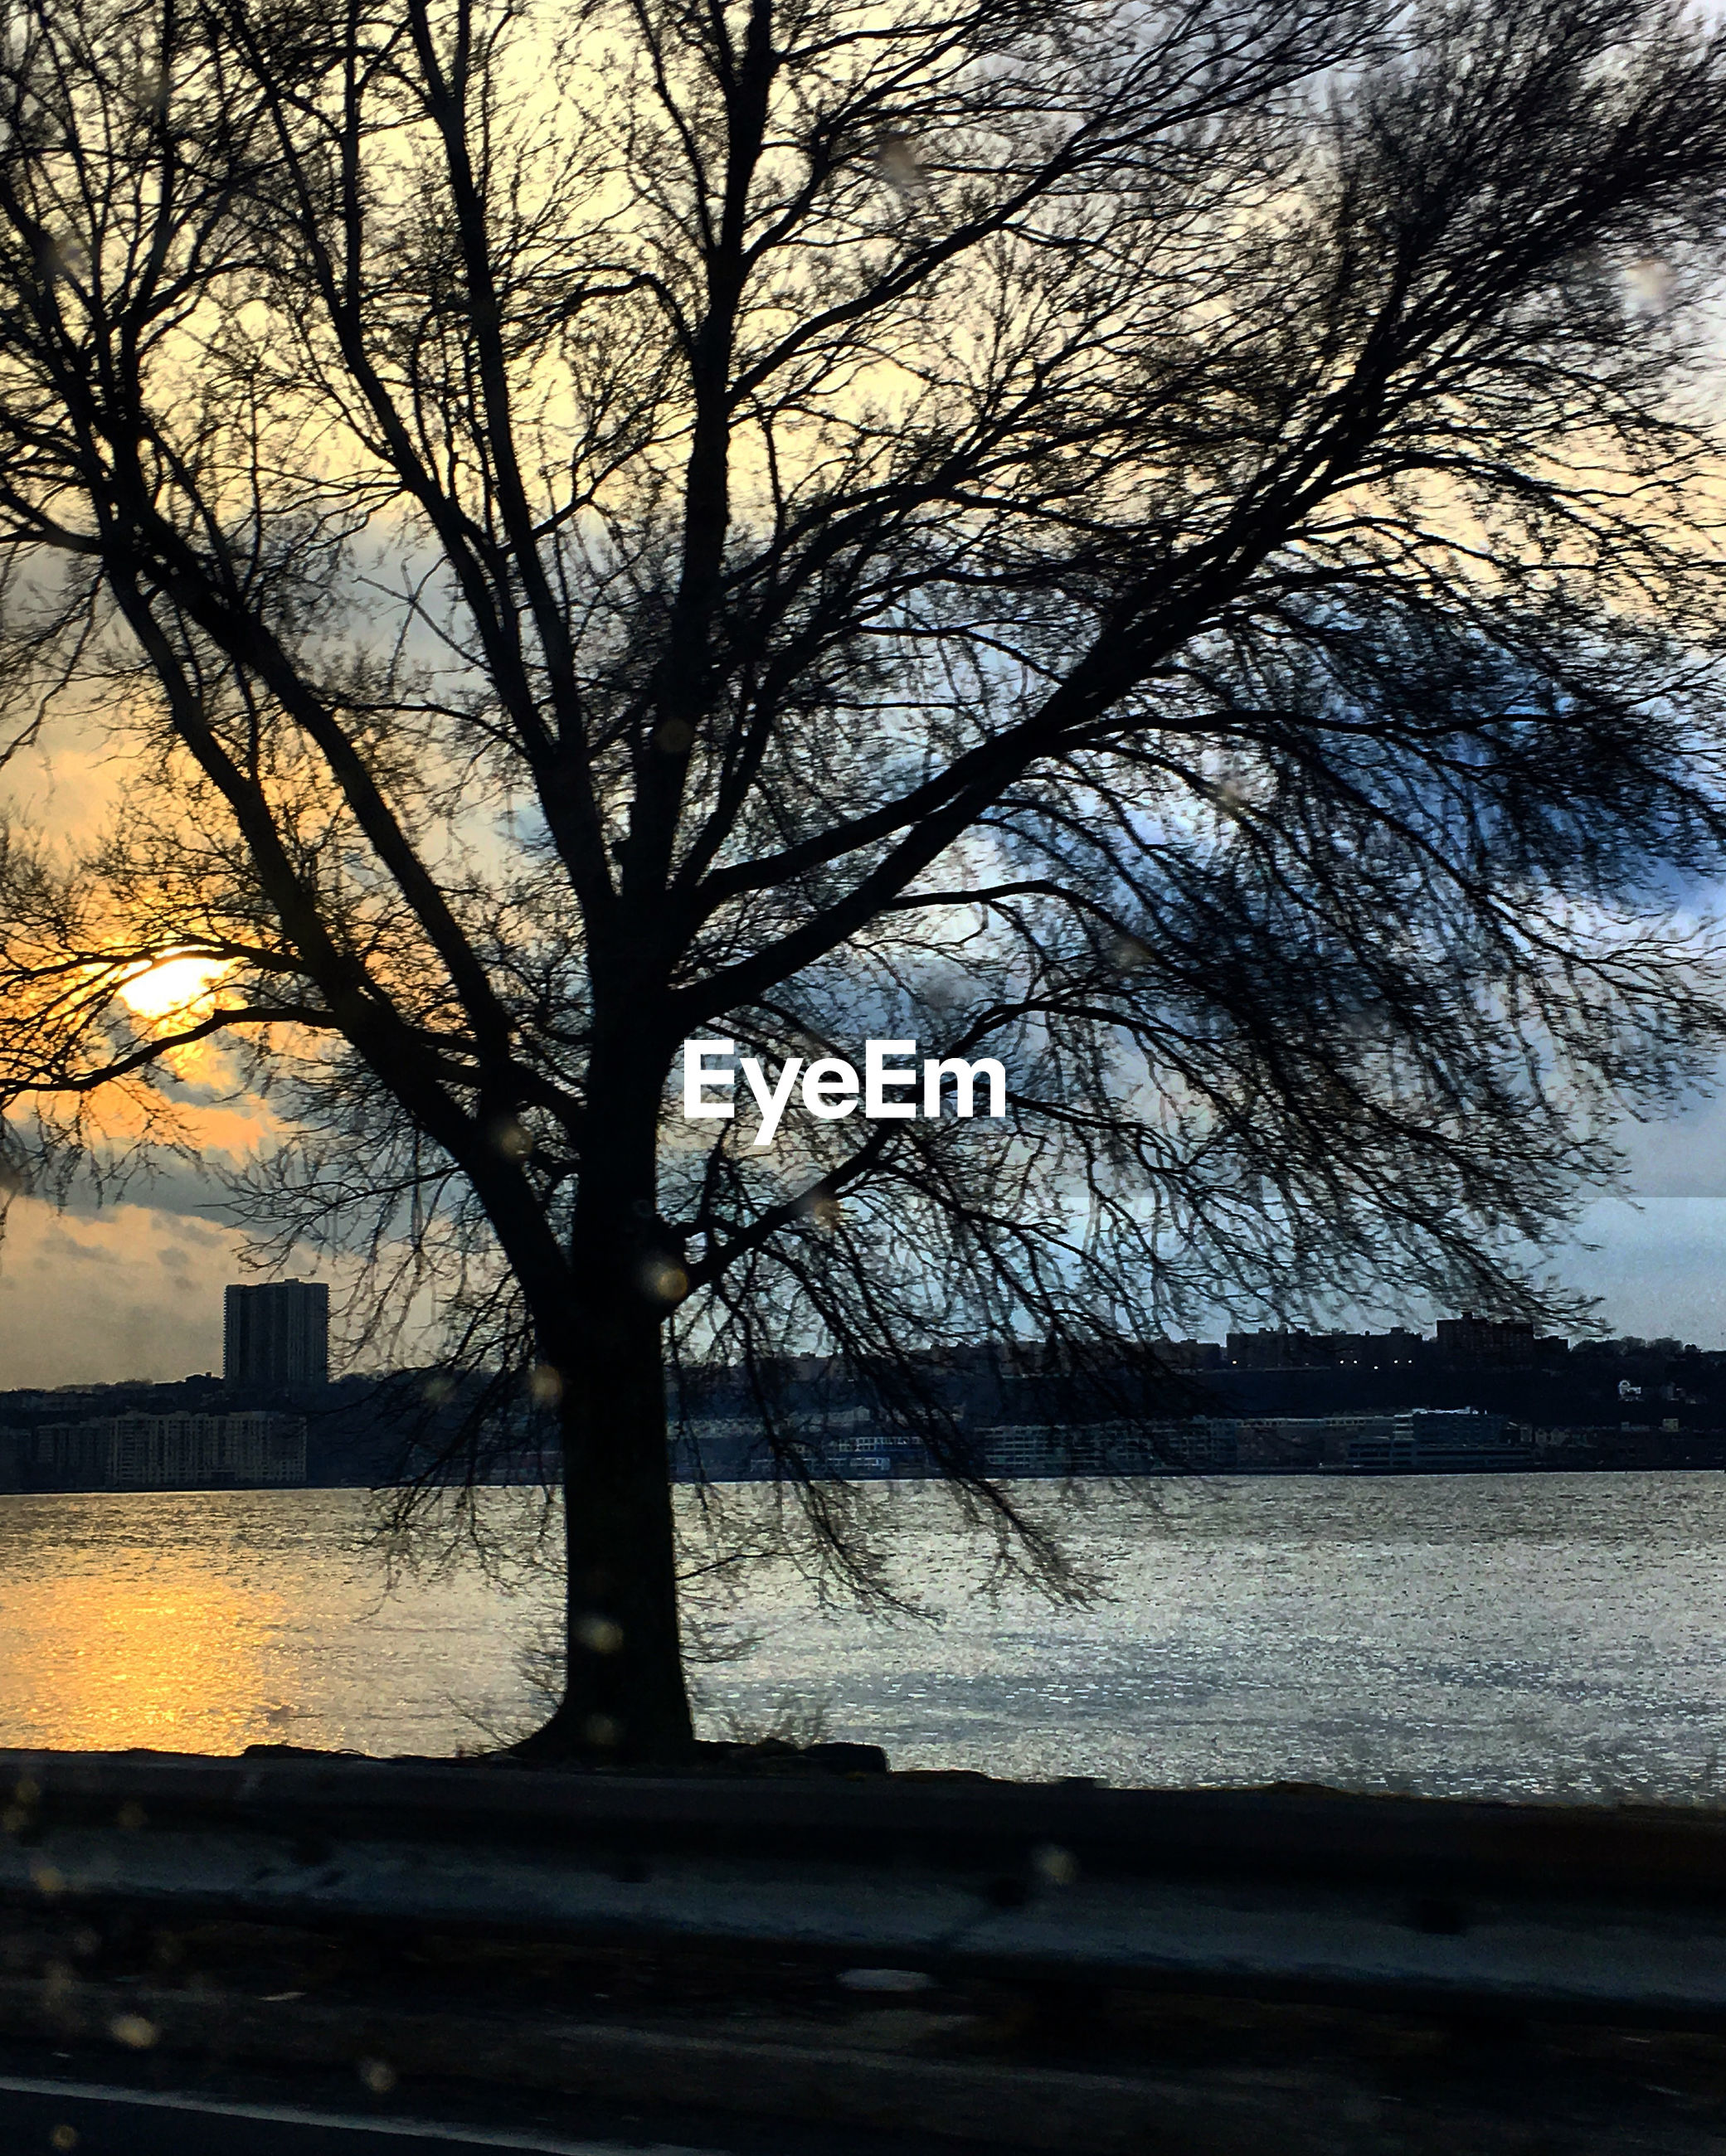 tree, river, bare tree, water, nature, no people, branch, outdoors, sky, sunset, built structure, architecture, scenics, silhouette, beauty in nature, day, building exterior, city